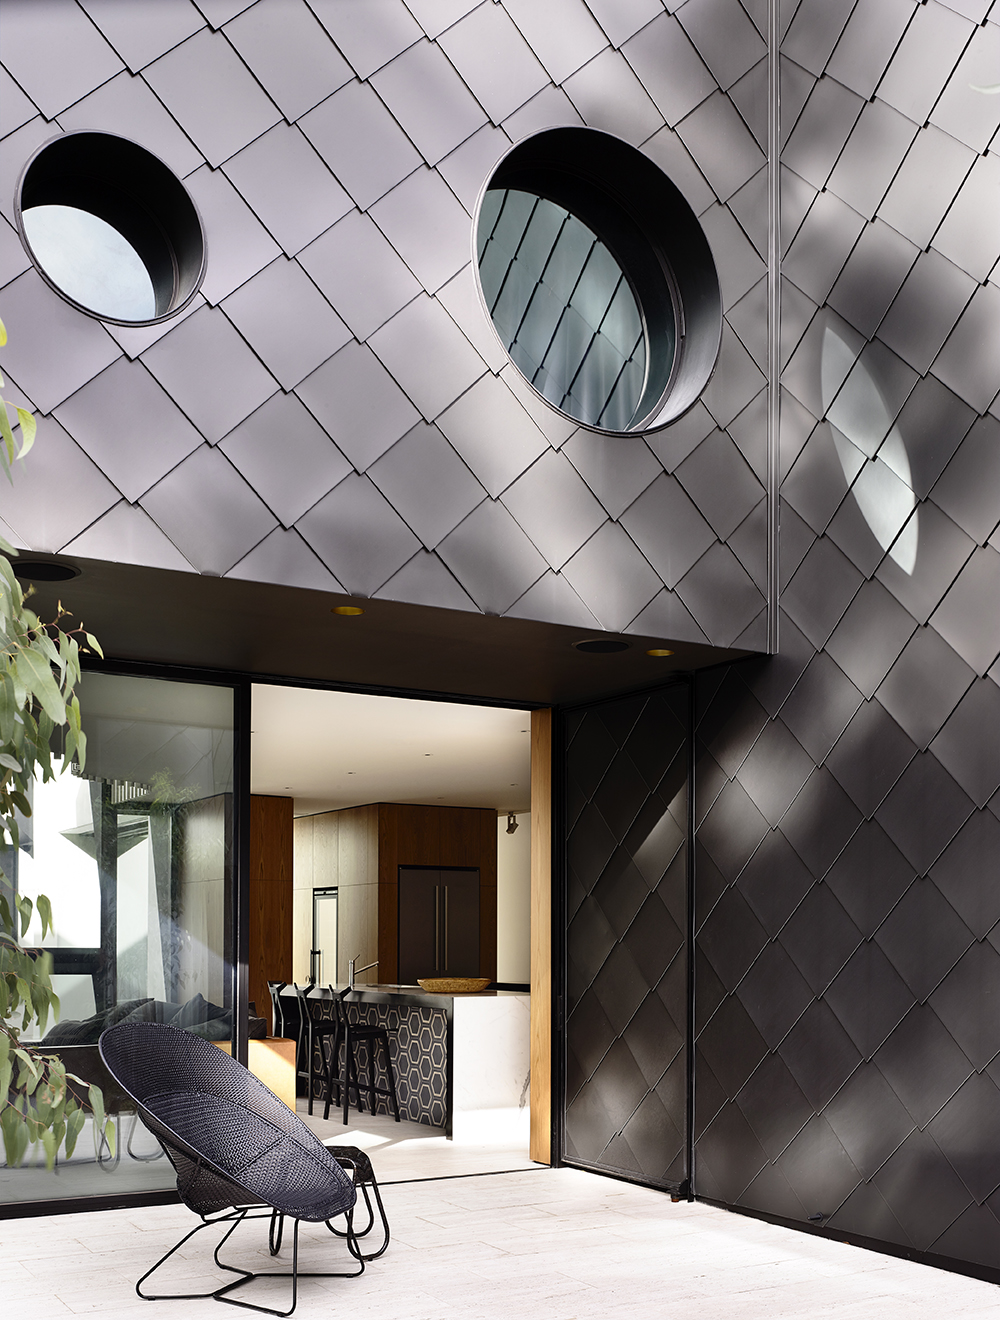 St. Kilda West House by Kennedy Nolan